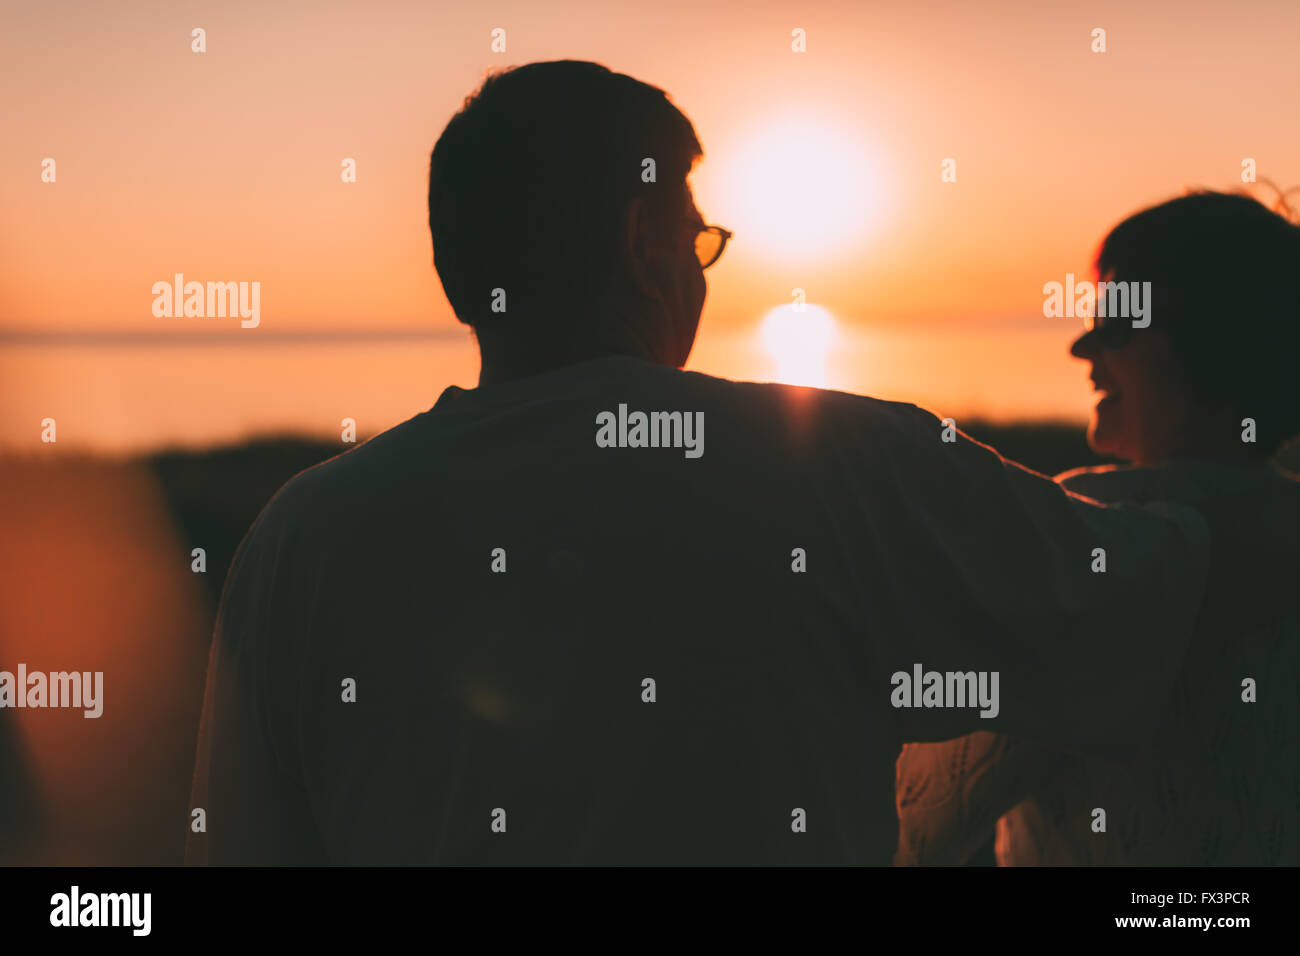 Silhouette Couple Sitting Bench Sunset Bench Stock Photos ... for bench silhouette back  157uhy